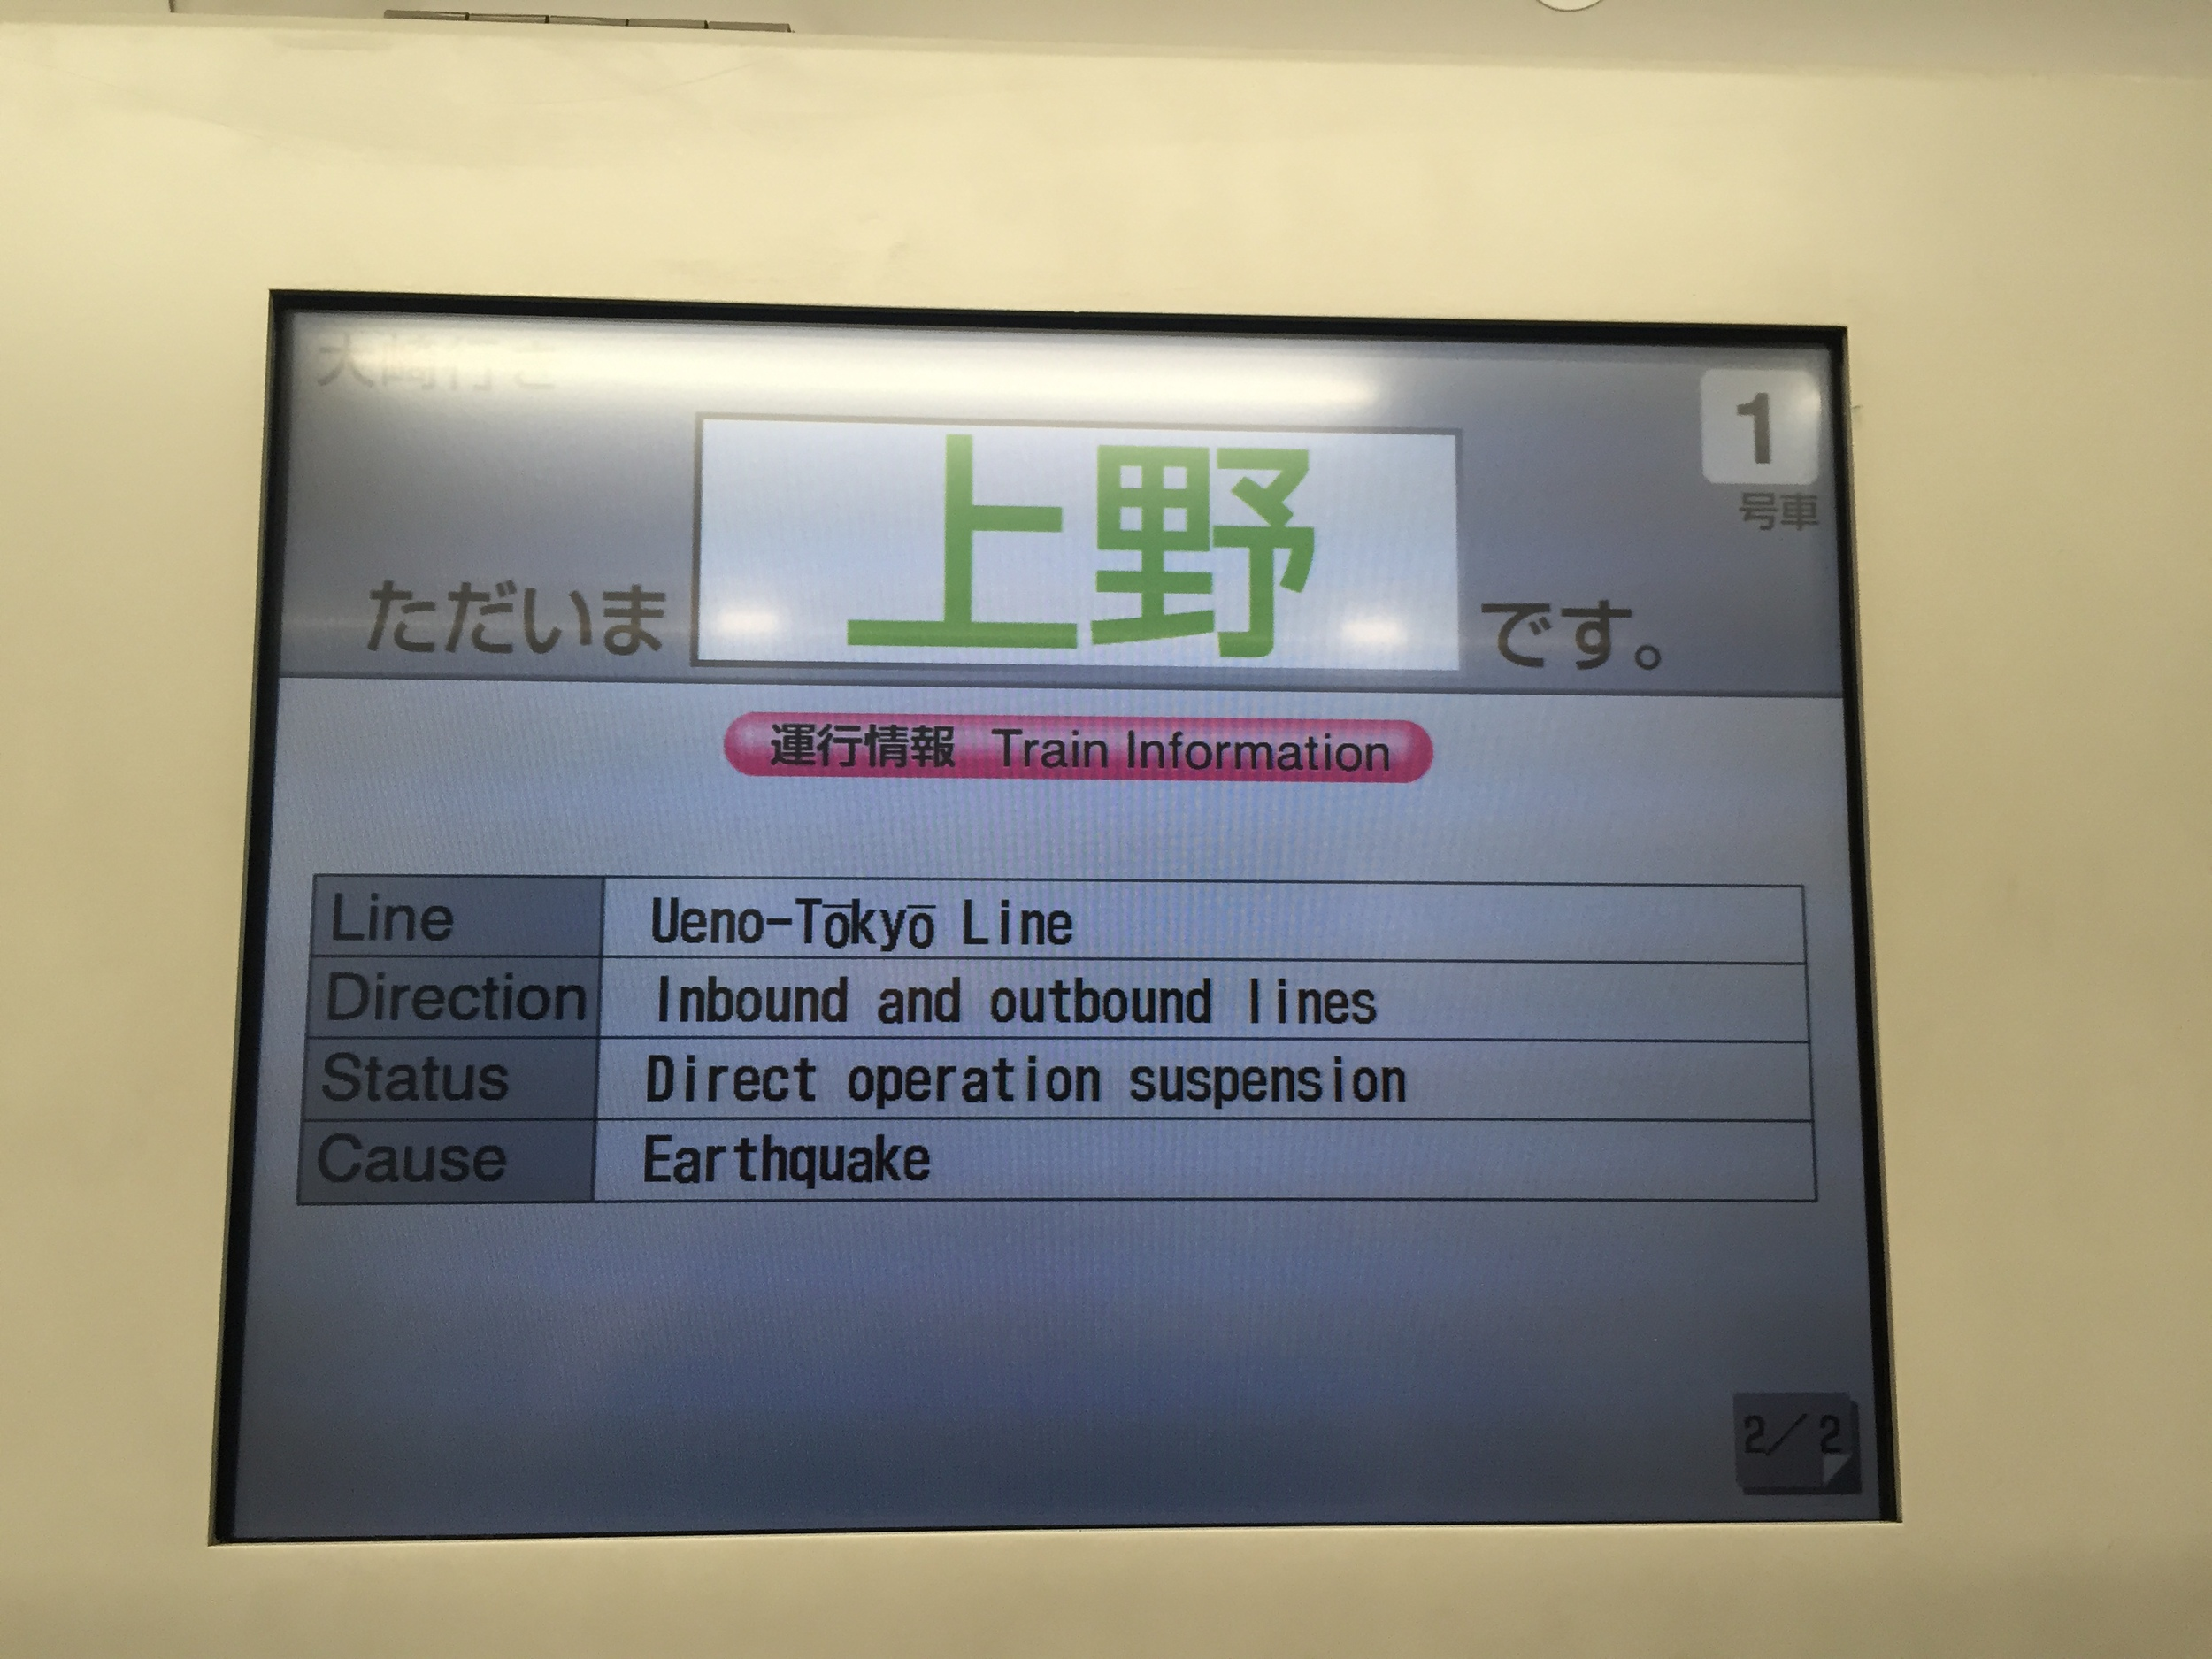 Seemed a rather routine display for the Yamanote Line, it appears.